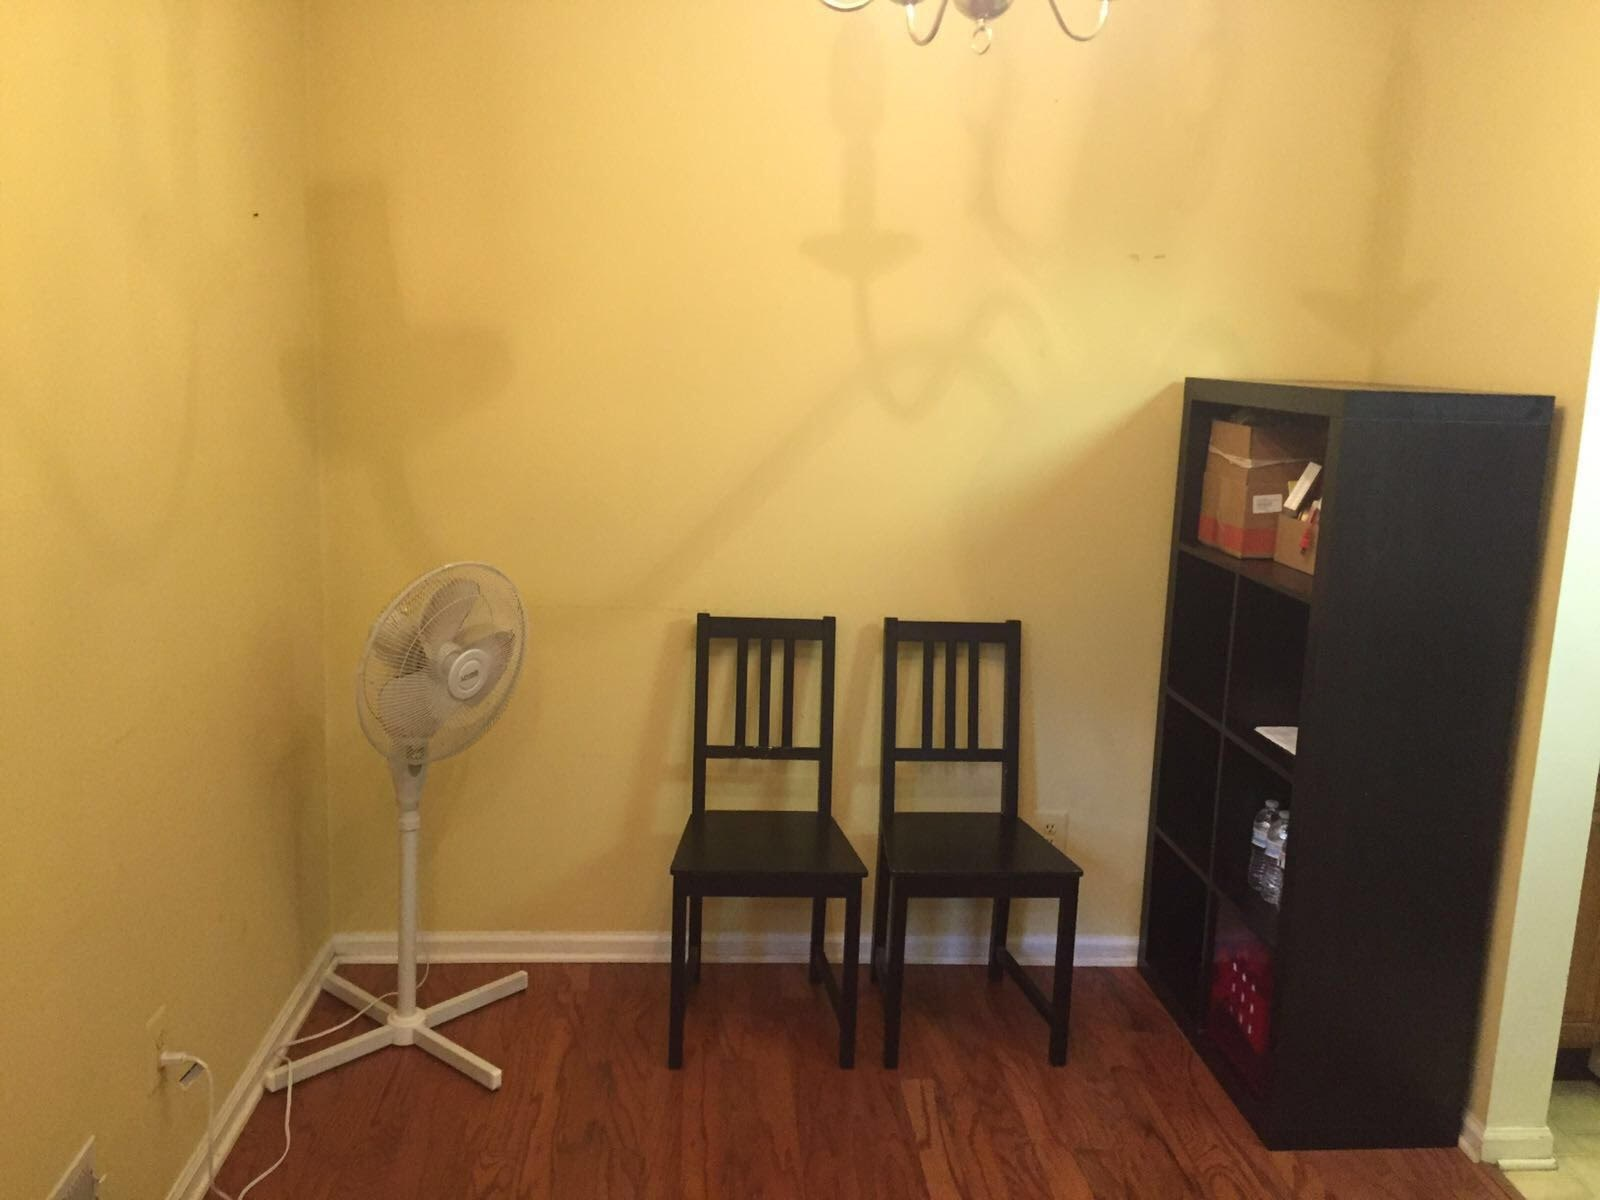 rooms for rent jersey city nj apartments house commercial society hill jersey city largest 1 bedroom apartment